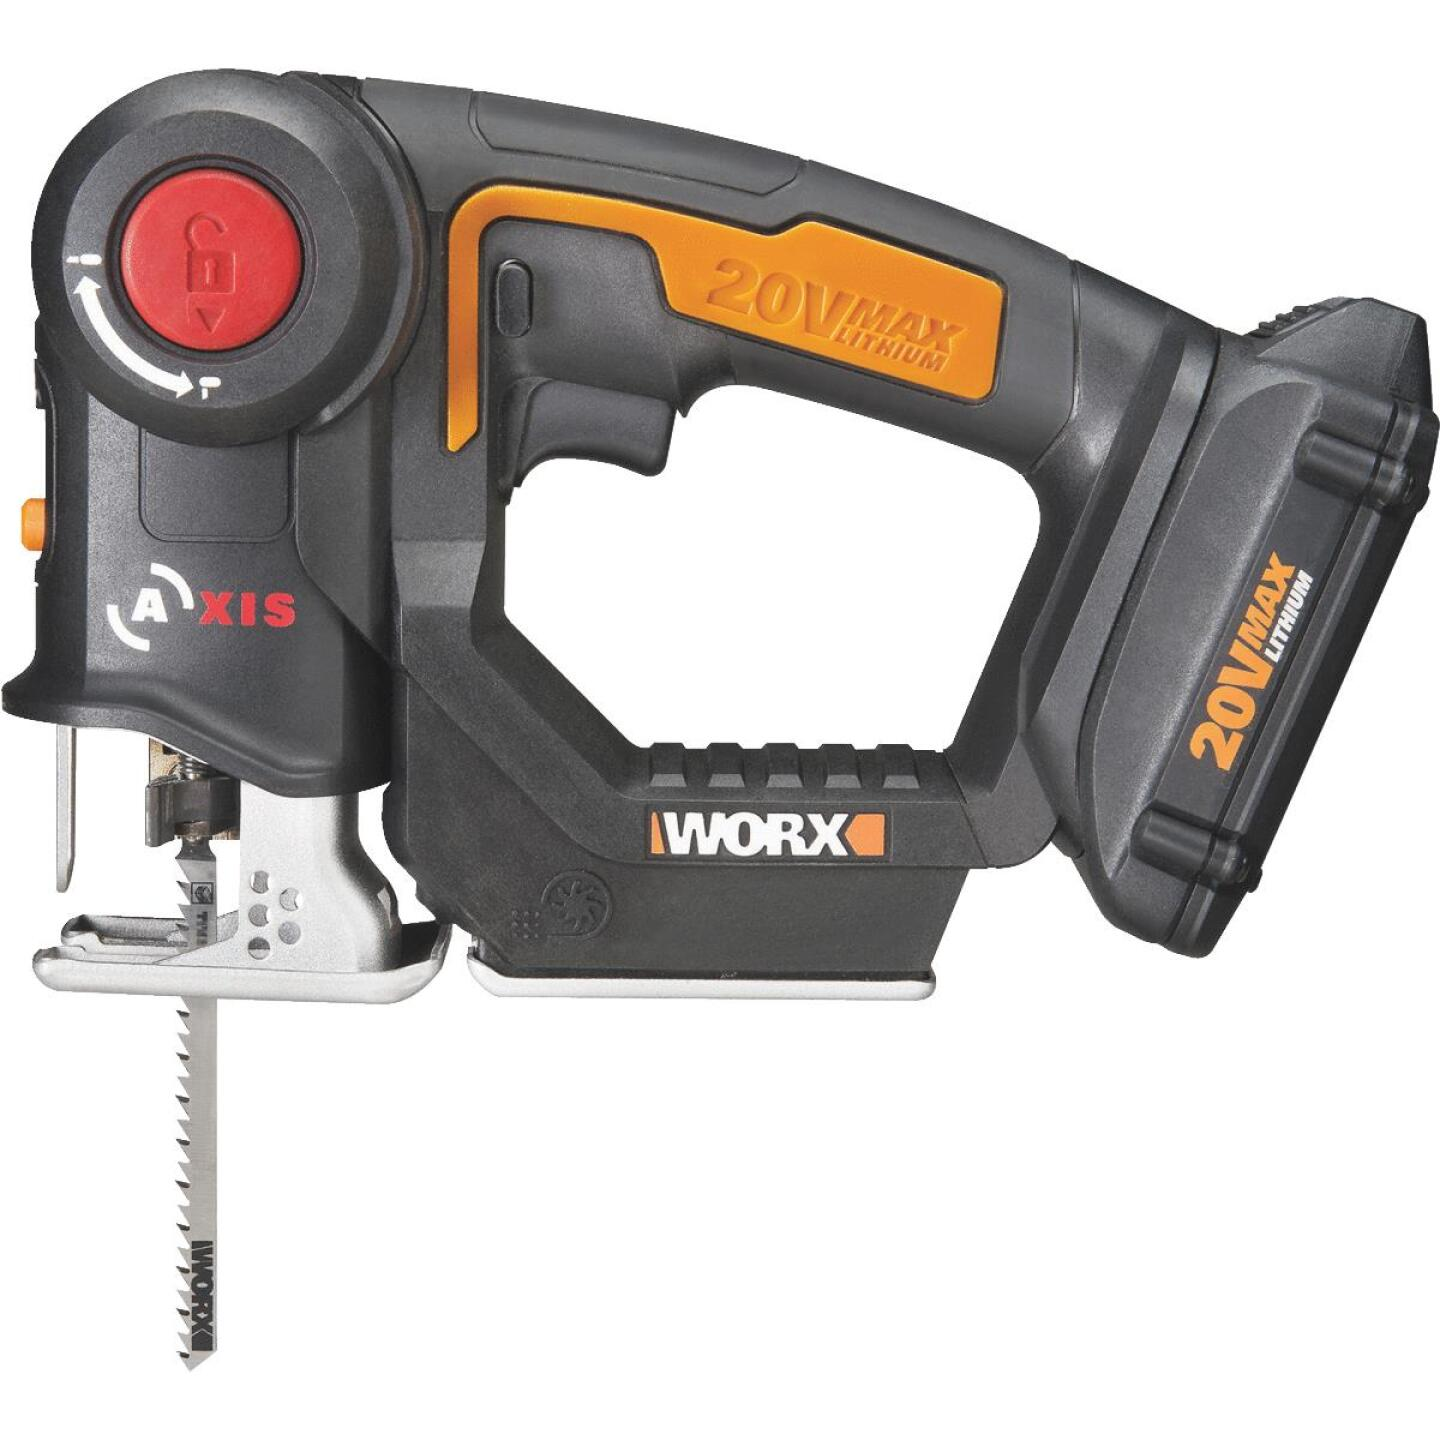 WORX 20 Volt Axis Lithium-Ion Cordless Jigsaw/Reciprocating Saw Kit Image 1